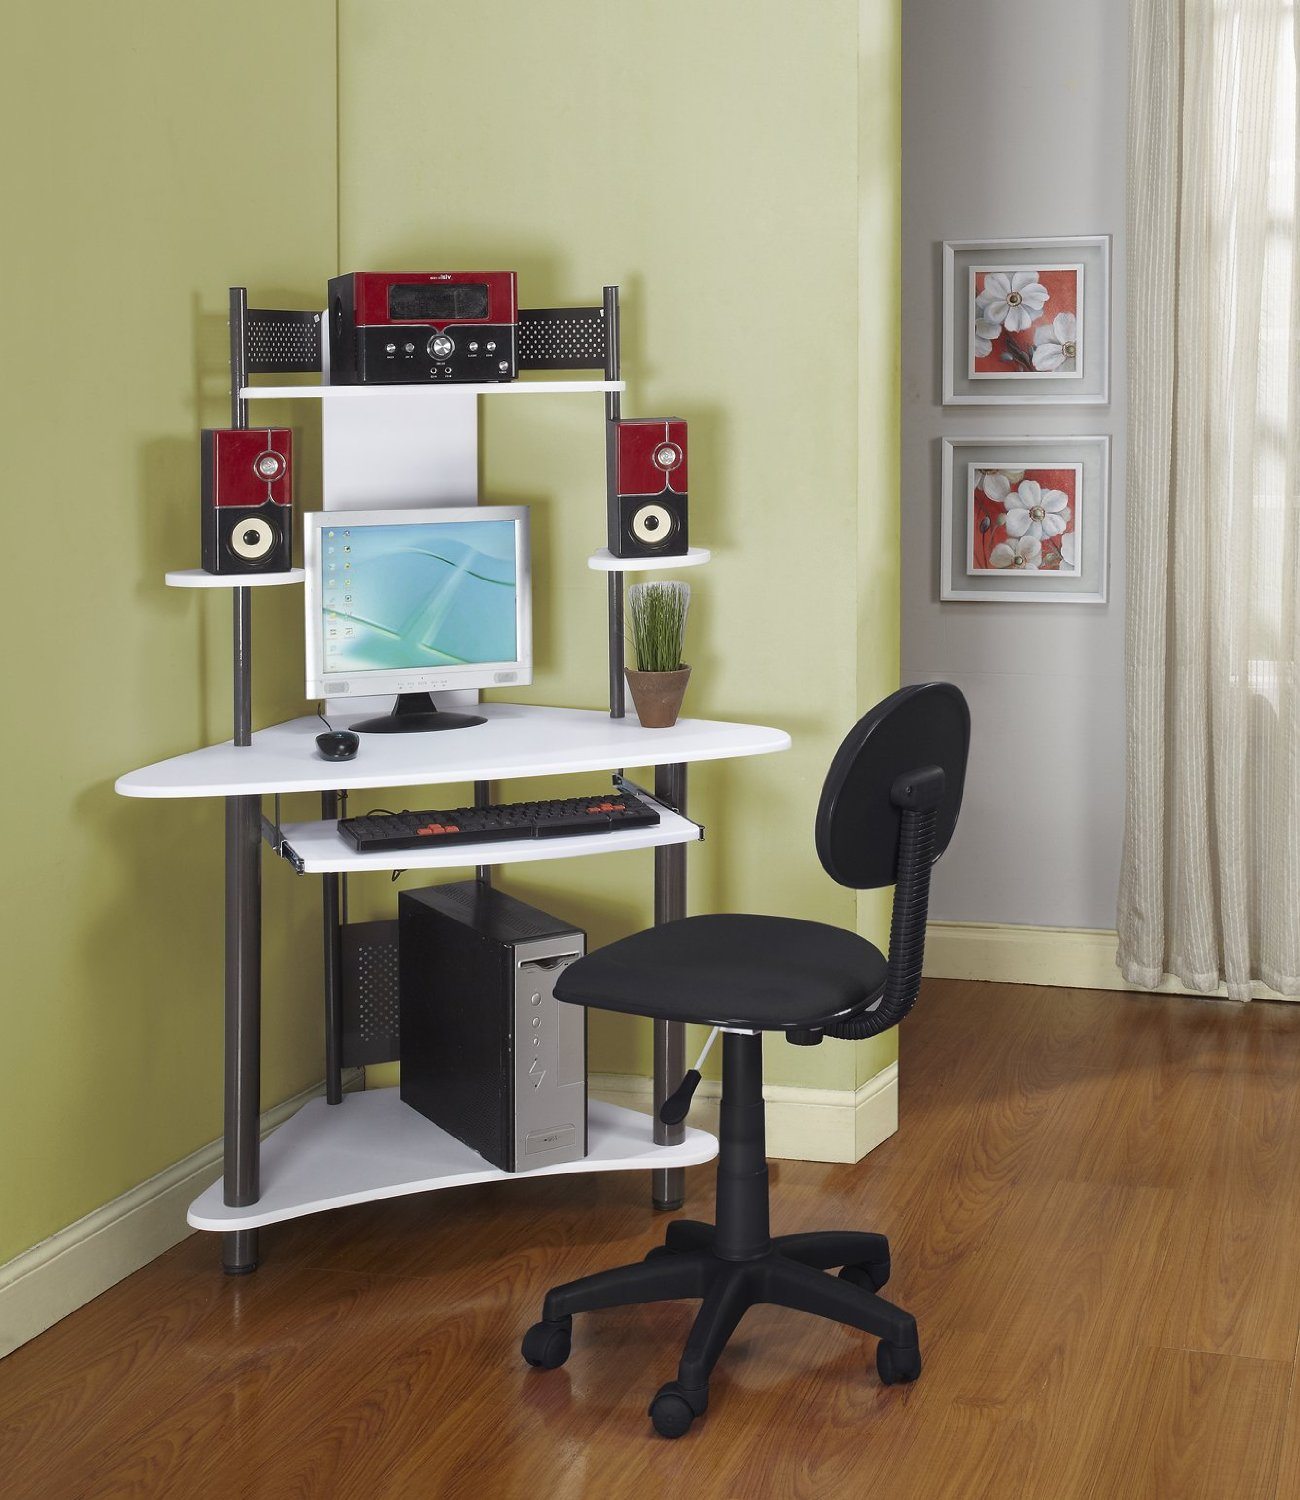 Small Home Office With Corner Computer Desk Ikea For Small Spaces With  Monitor And Sliding Panel